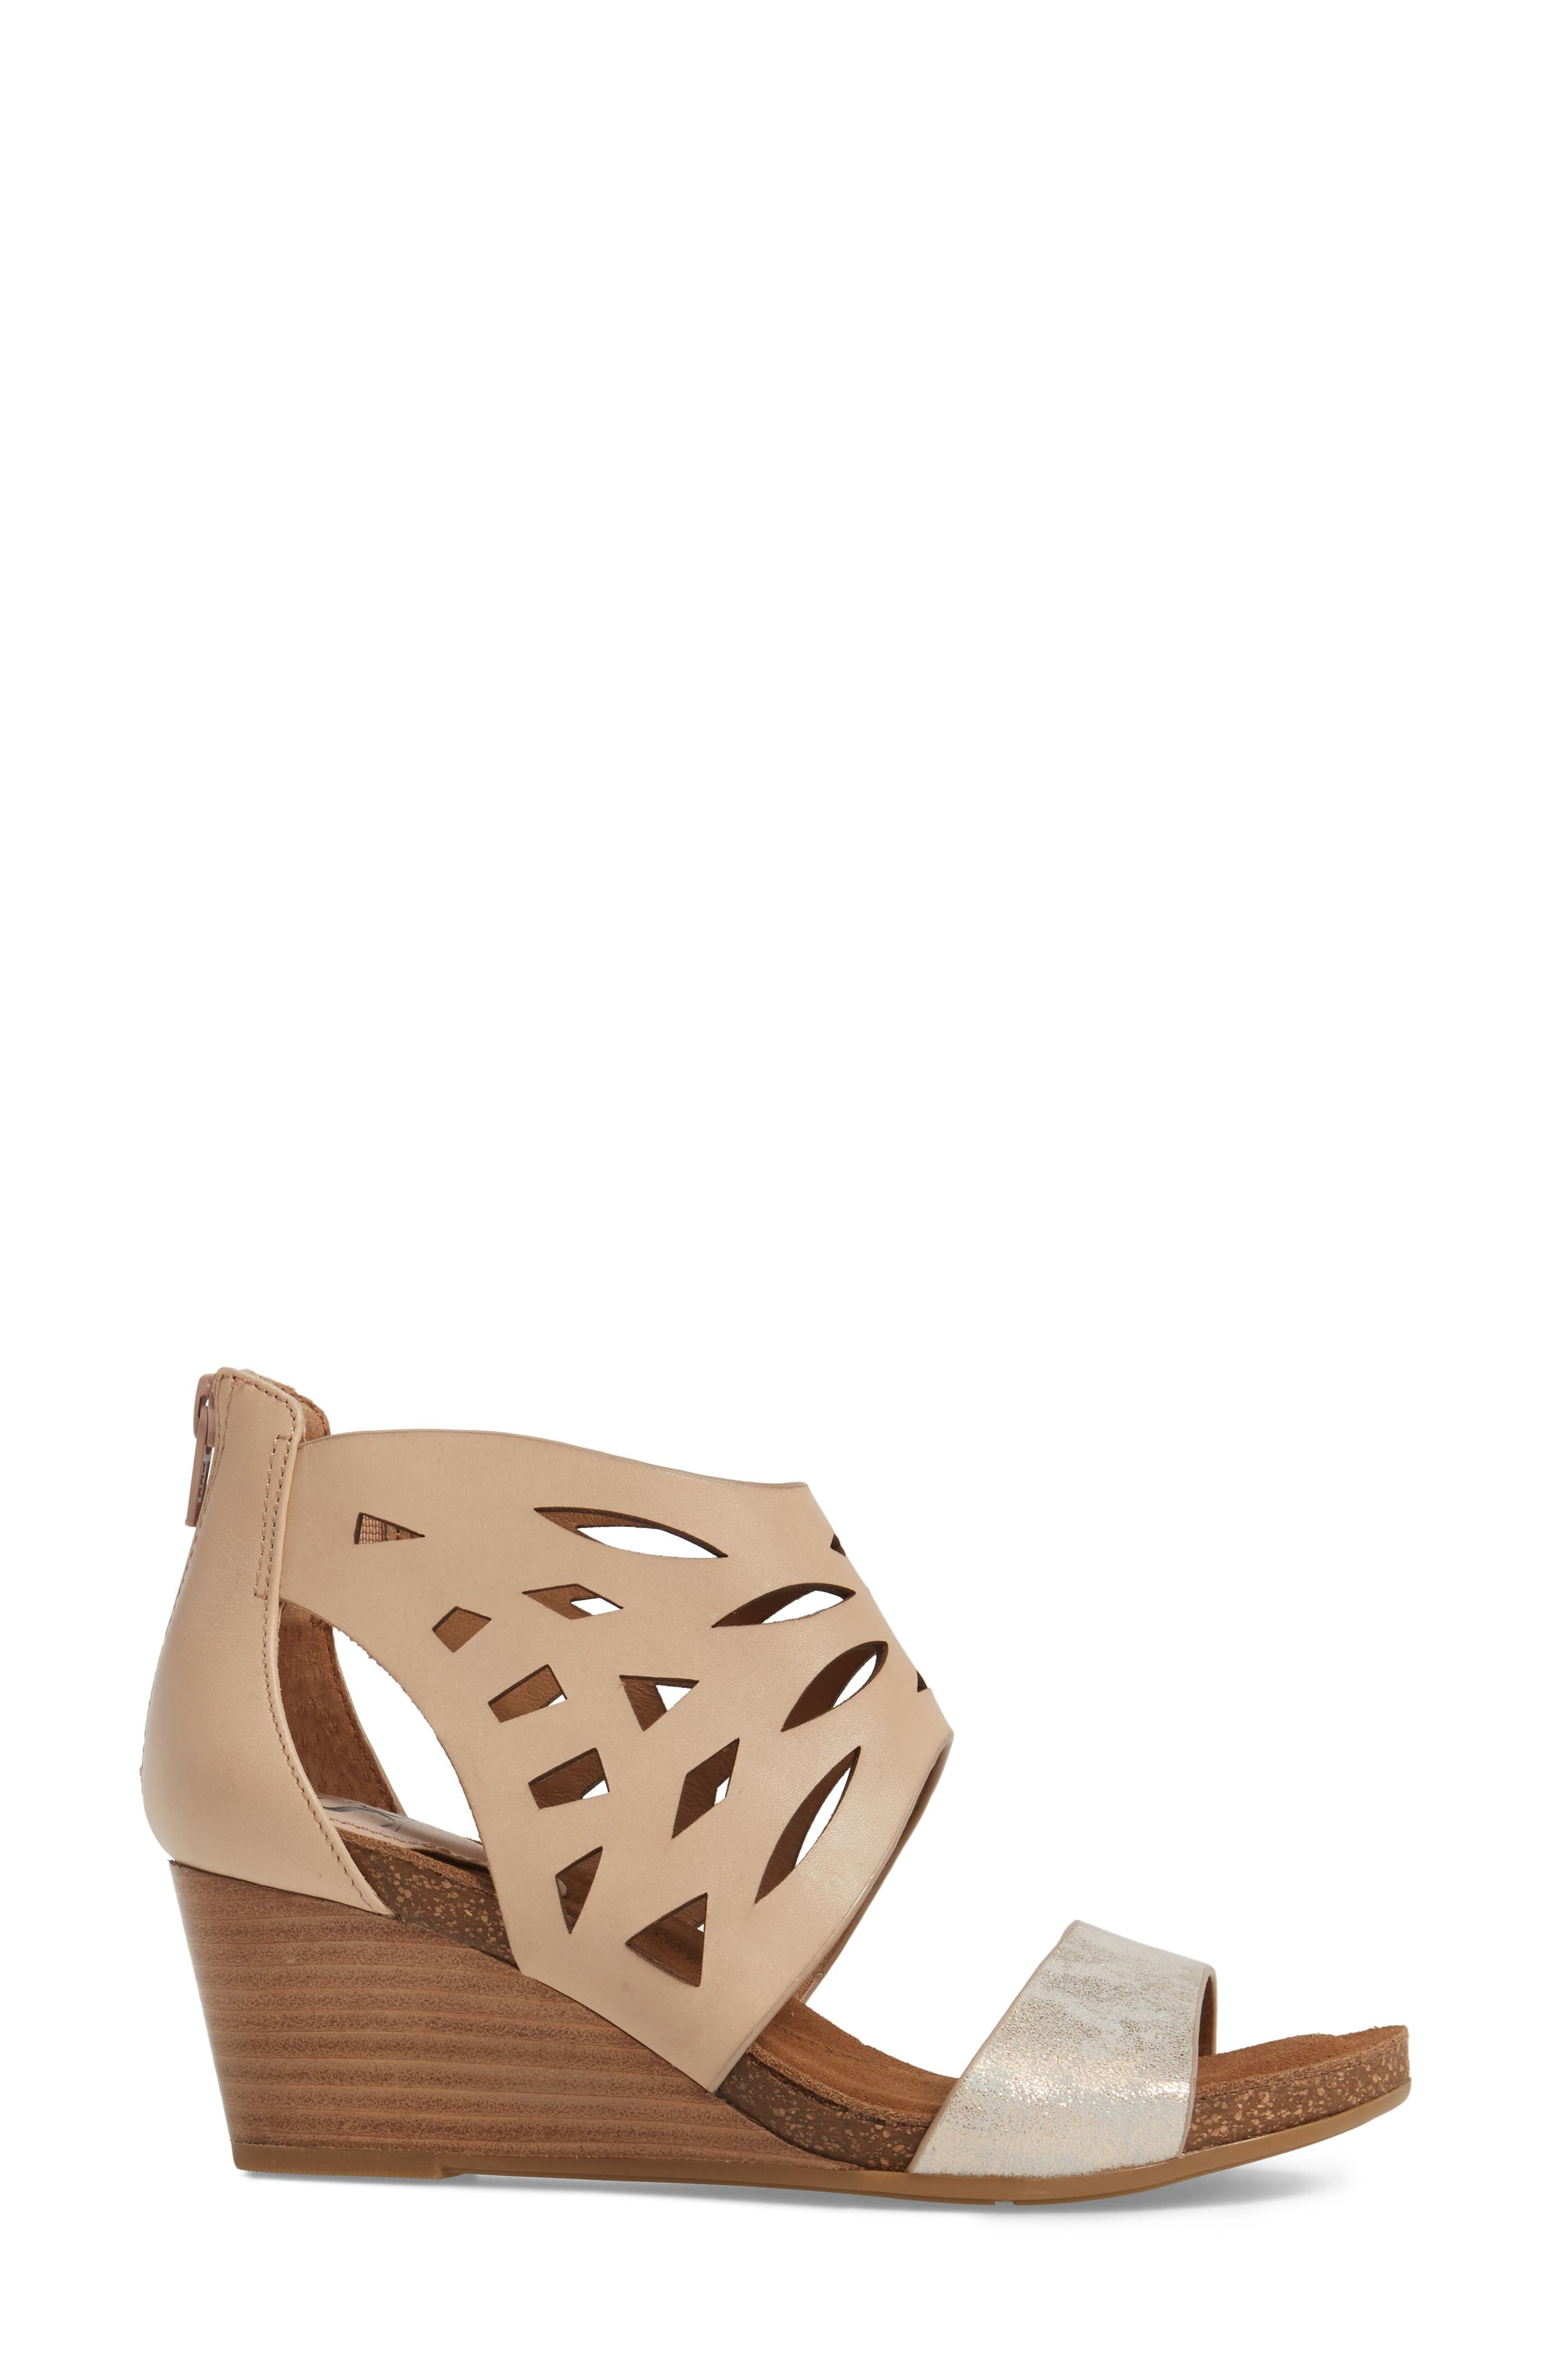 Mystic Perforated Wedge Sandal,                             Alternate thumbnail 3, color,                             Blush/ Ivory Leather